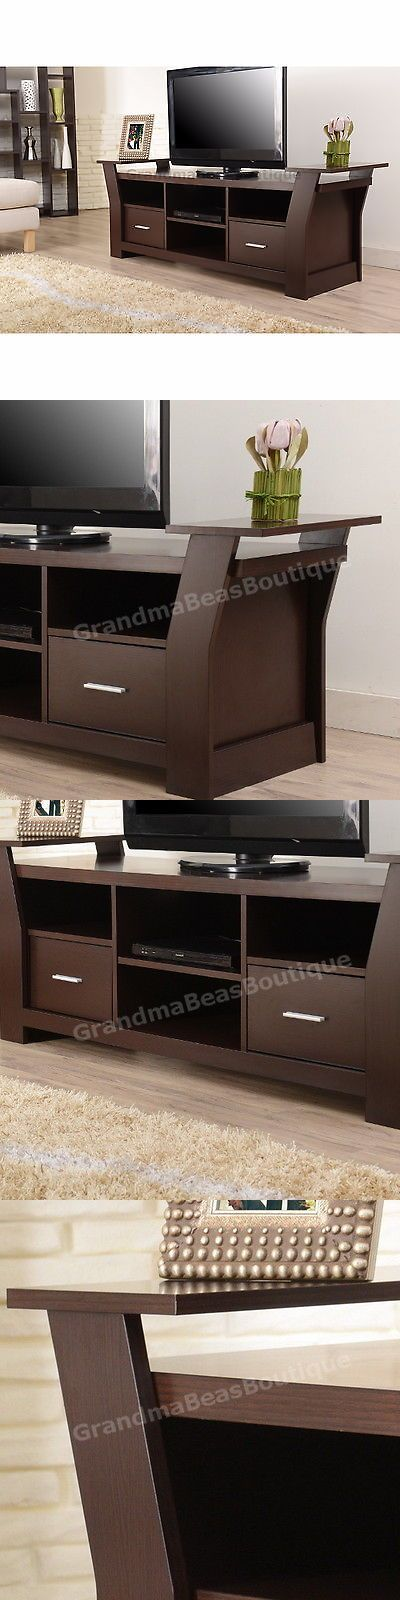 Entertainment Units TV Stands: Tv Stand For Flat Screens 50 55 60 65 Entertainment Center Console Media Cabinet -> BUY IT NOW ONLY: $208.88 on eBay!